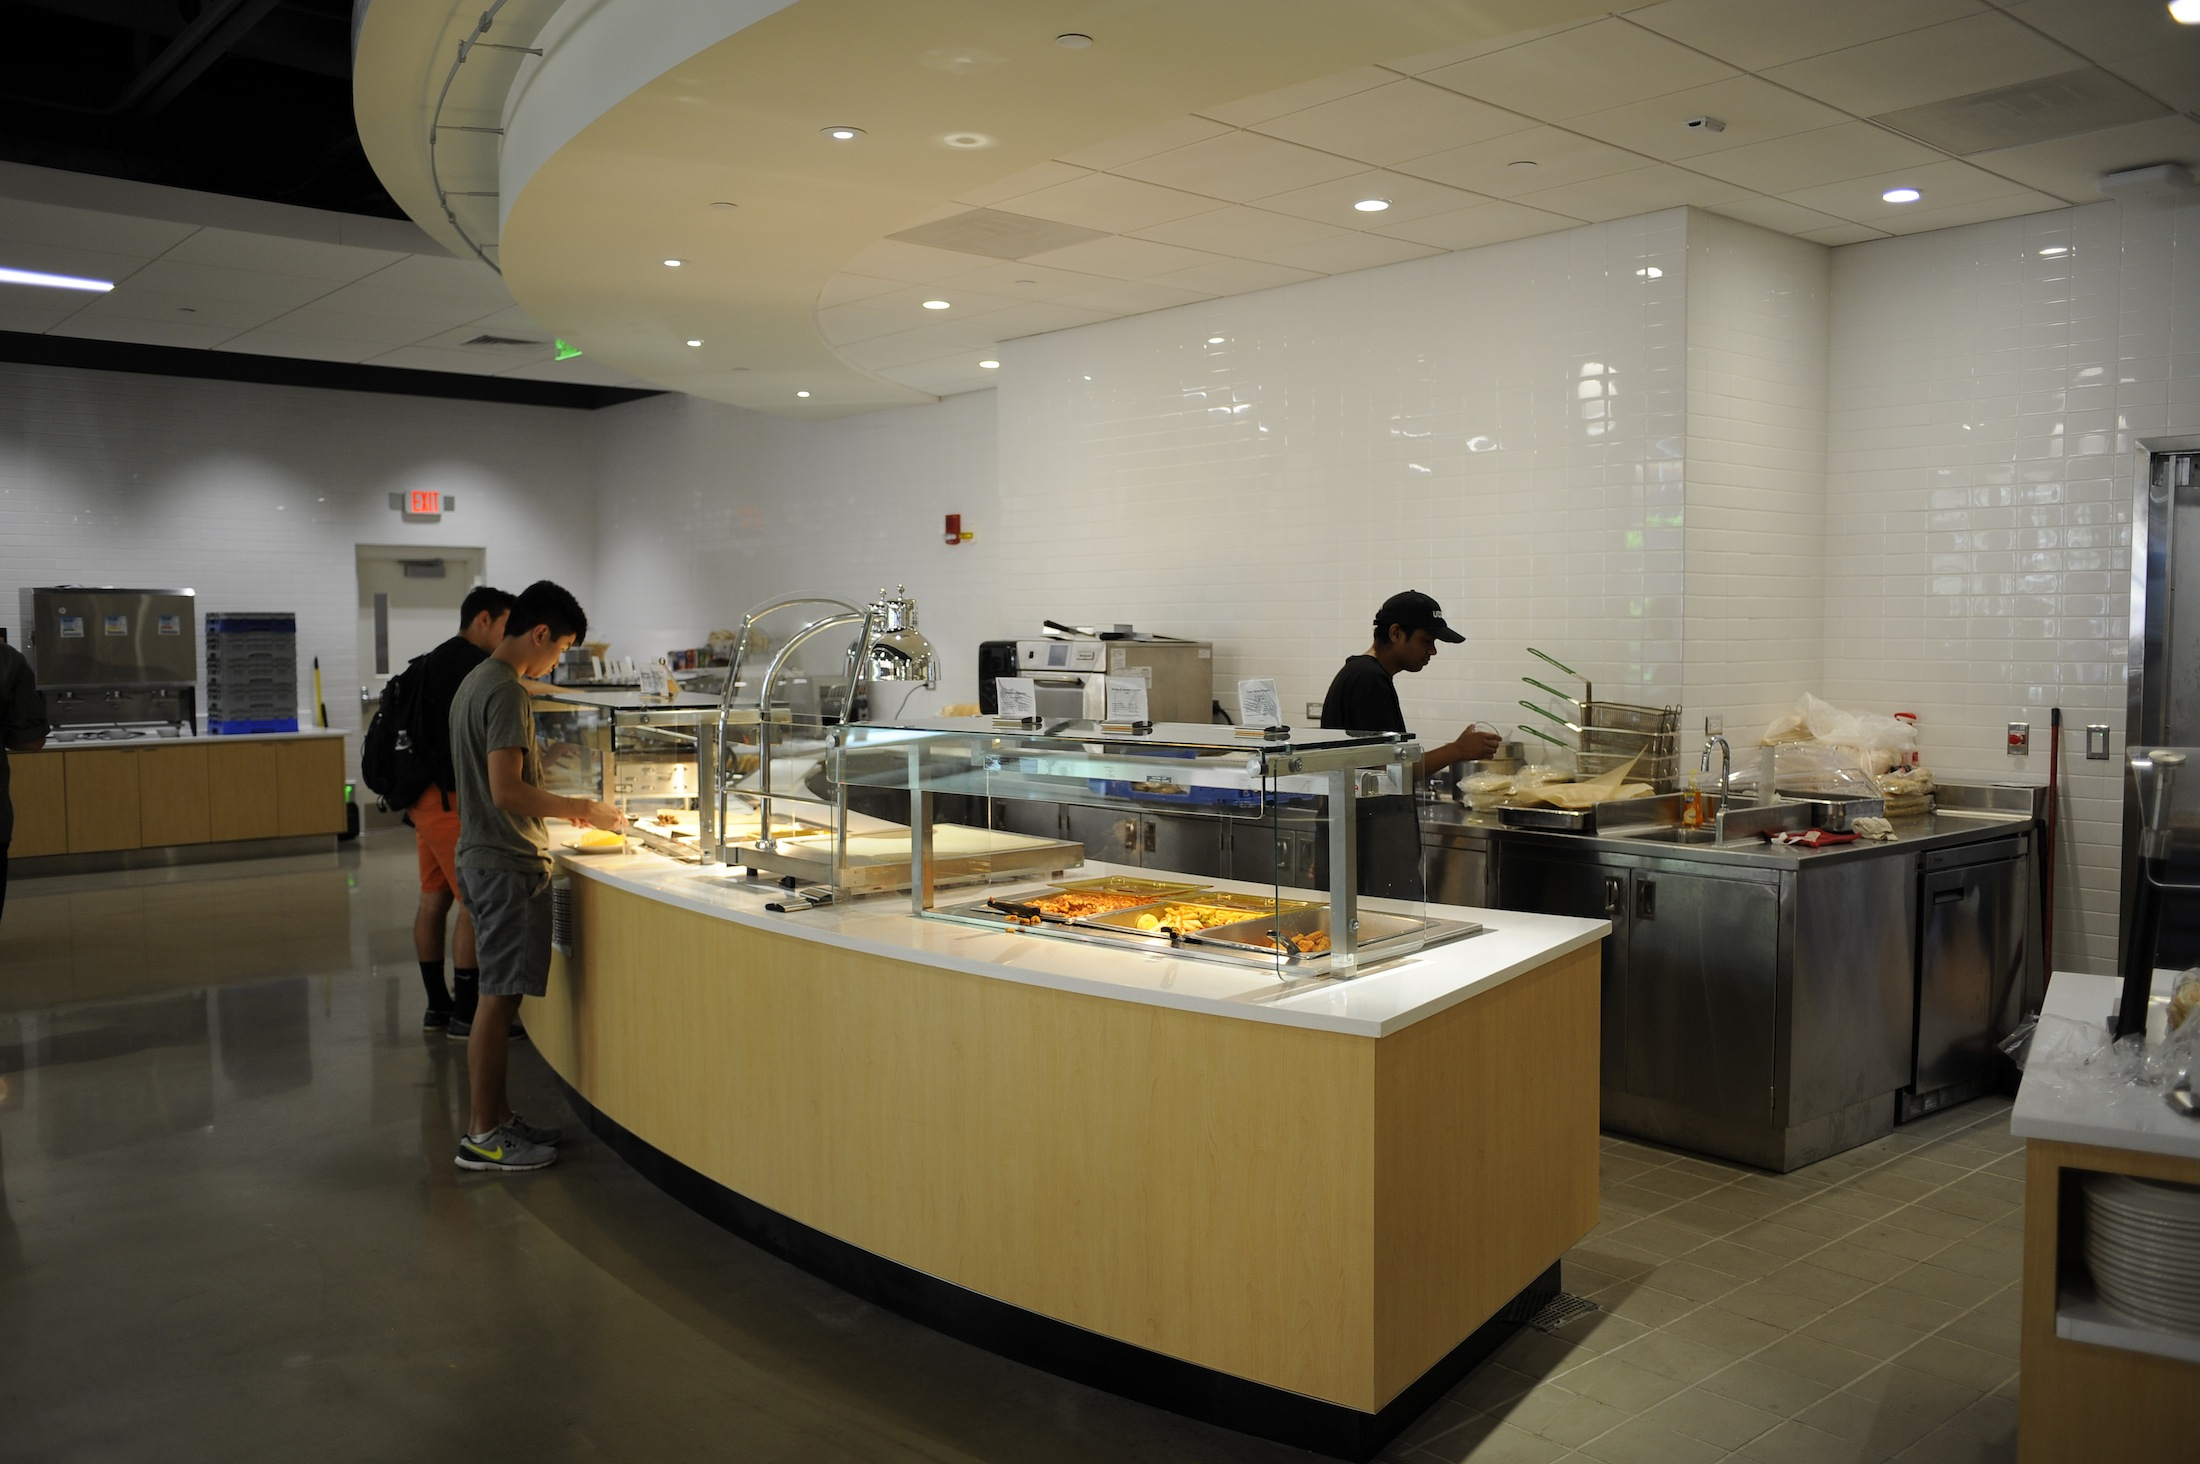 A letter was issued last Friday stating that UConn's Dining Services department obtains the only liquor permit holder on campus. (Jason Jiang/The Daily Campus)